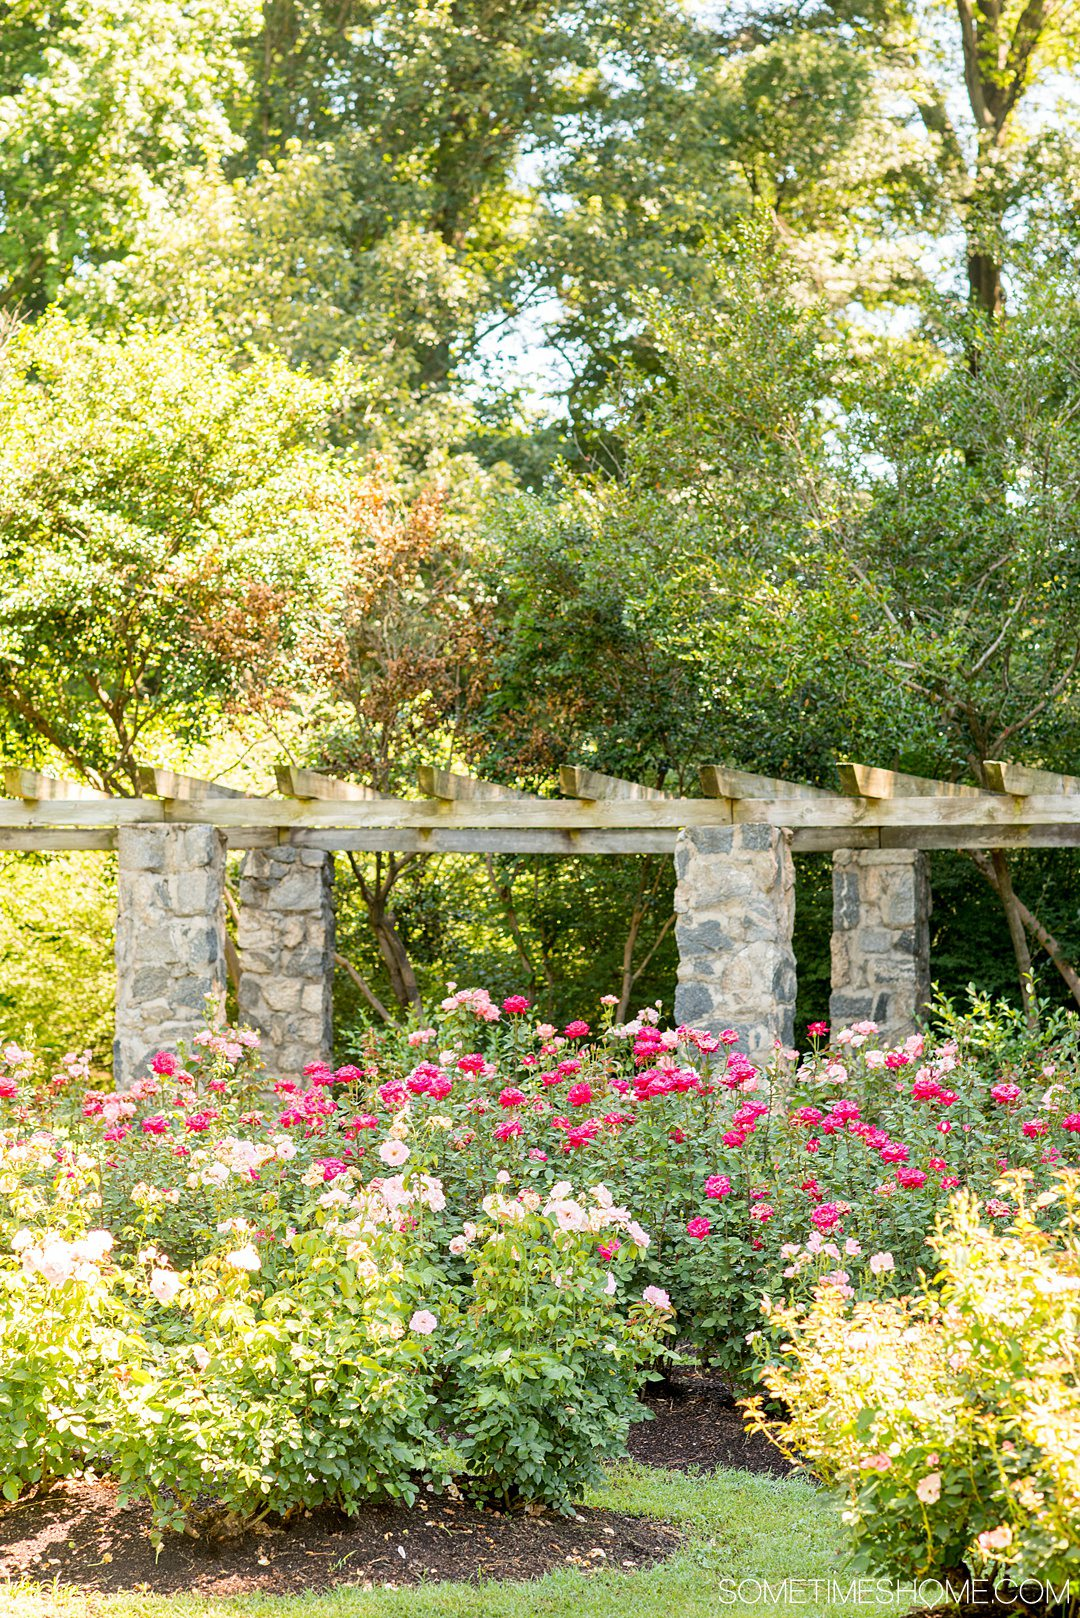 Photo of a pergola and roses in the Raleigh Rose Garden in Raleigh, NC.